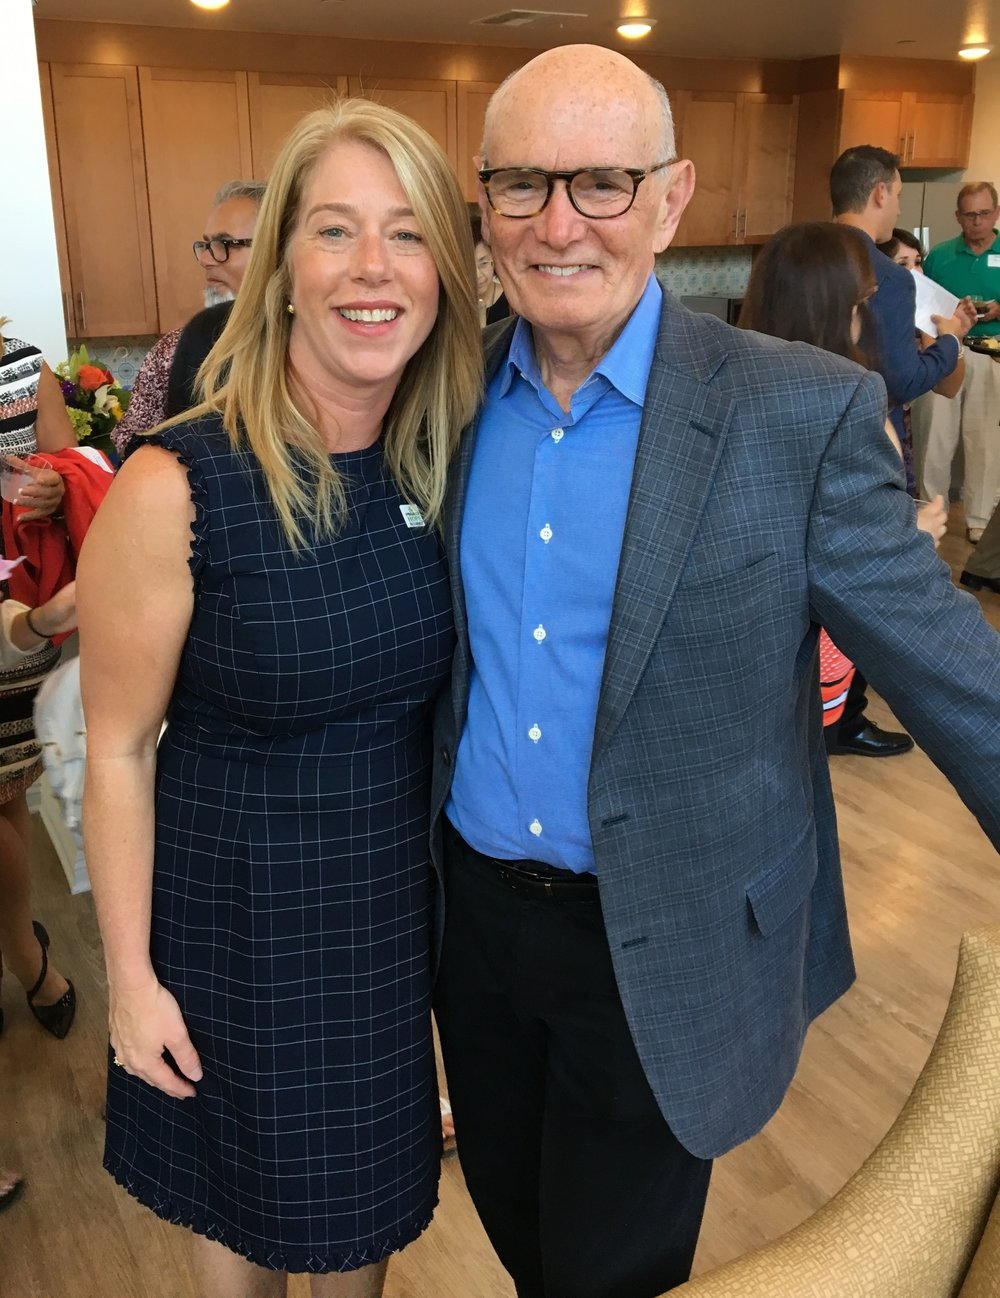 Jennifer Friend, Project Hope Alliance CEO, with George Searcy, Jamboree Housing Corporation Senior Vice President, Community Impact